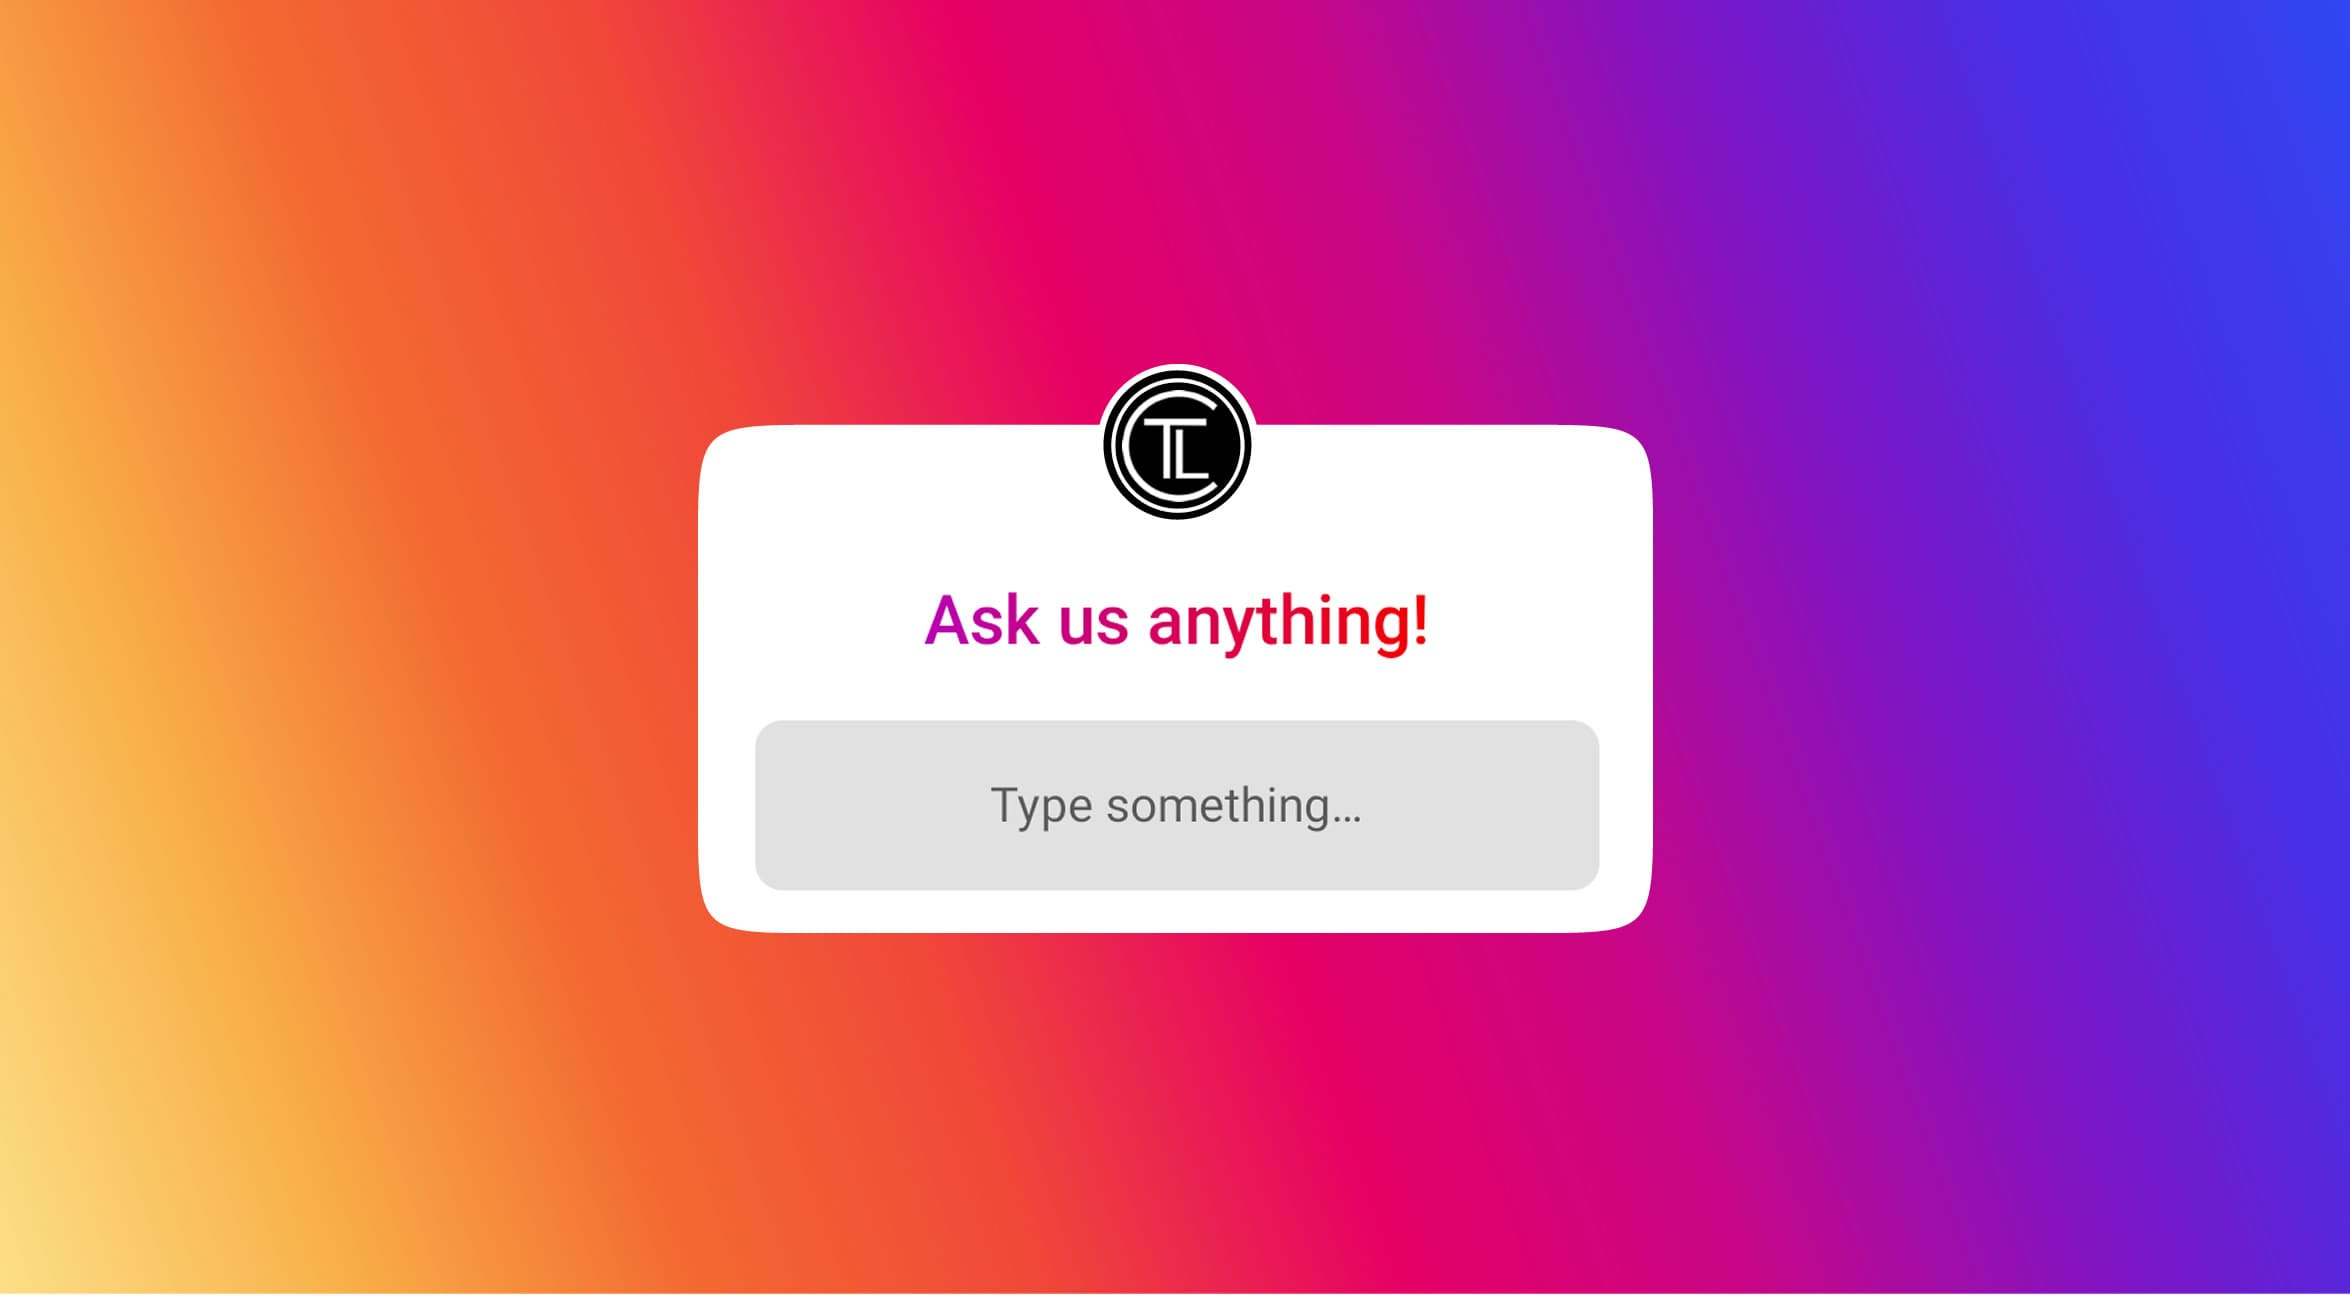 Tips to Use Instagram as a Graphic Designer - Instagram Questions